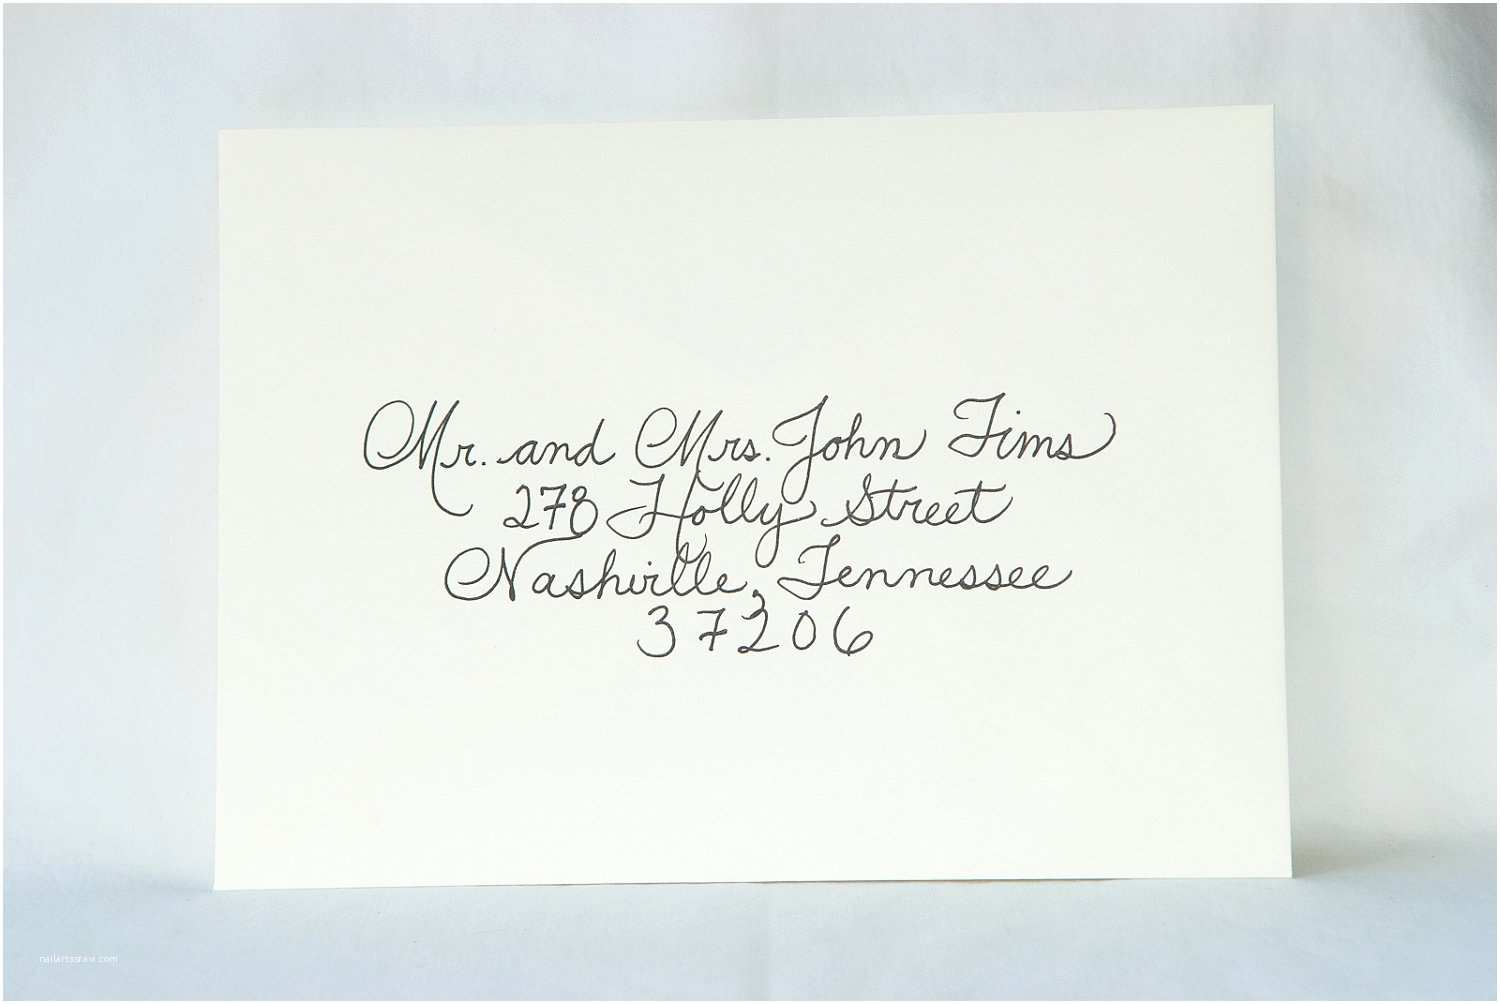 Best Envelopes for Wedding Invitations Custom Wedding Calligraphy for Invitation Envelope Addressing